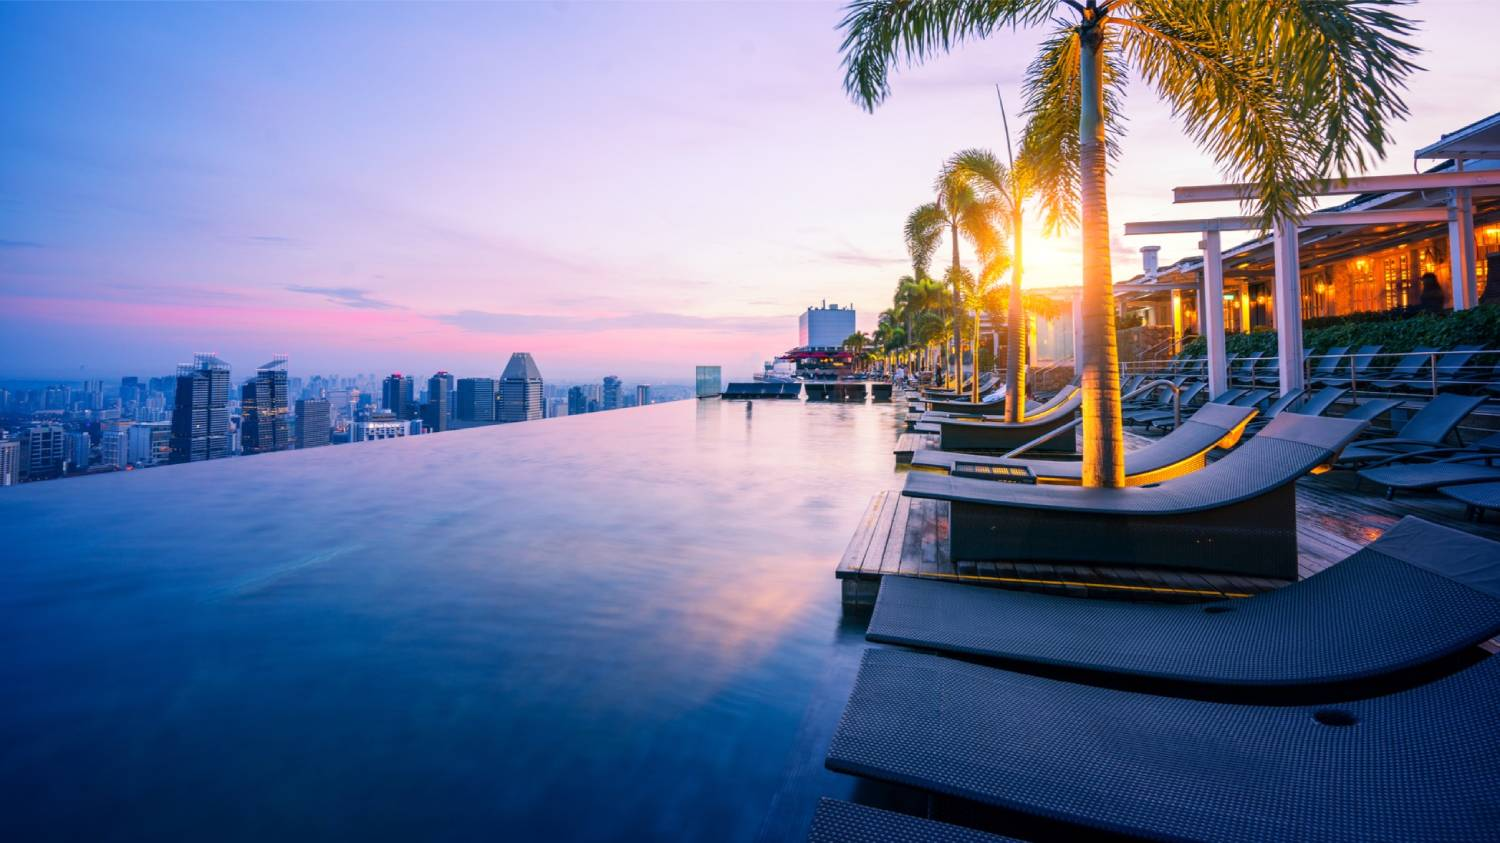 Marina Bay Sands Skypark - Things To Do In Singapore